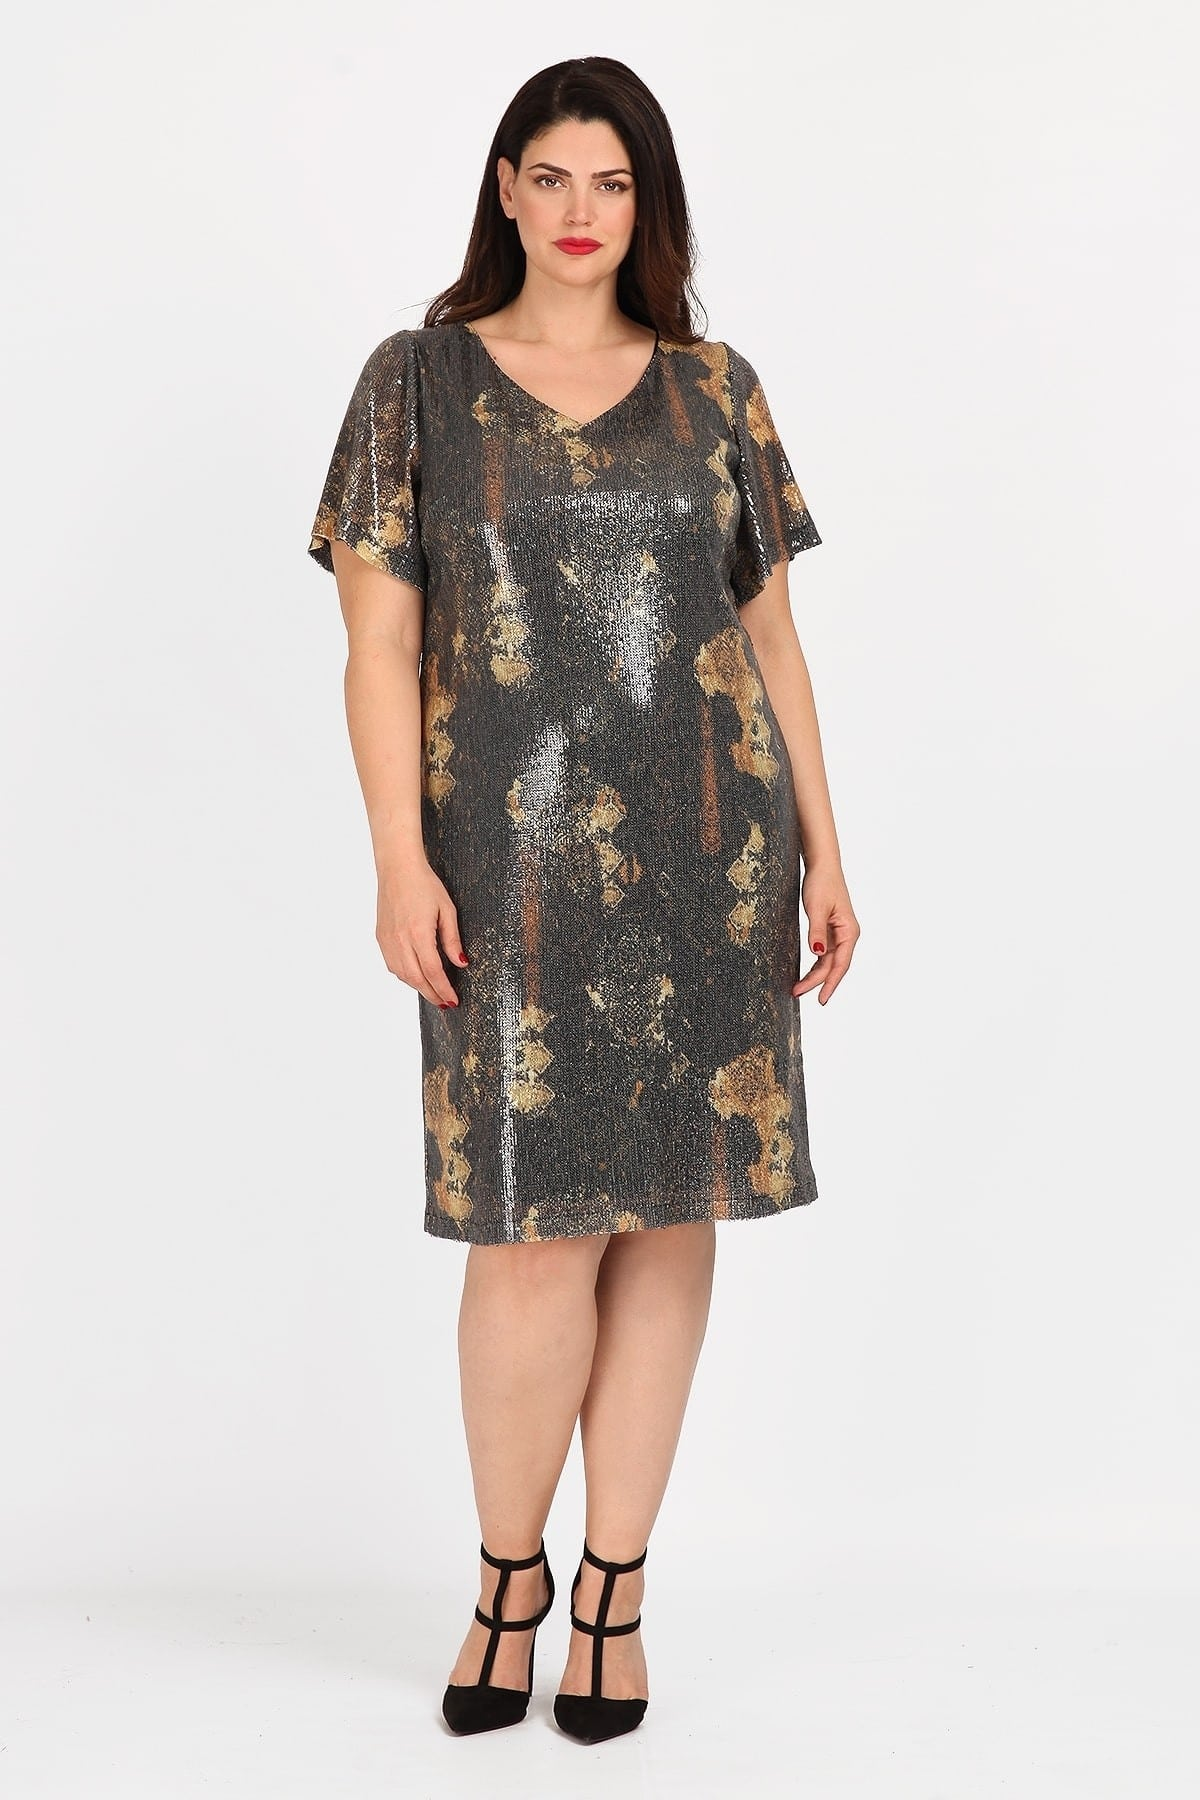 Printed dress from elastic sequins